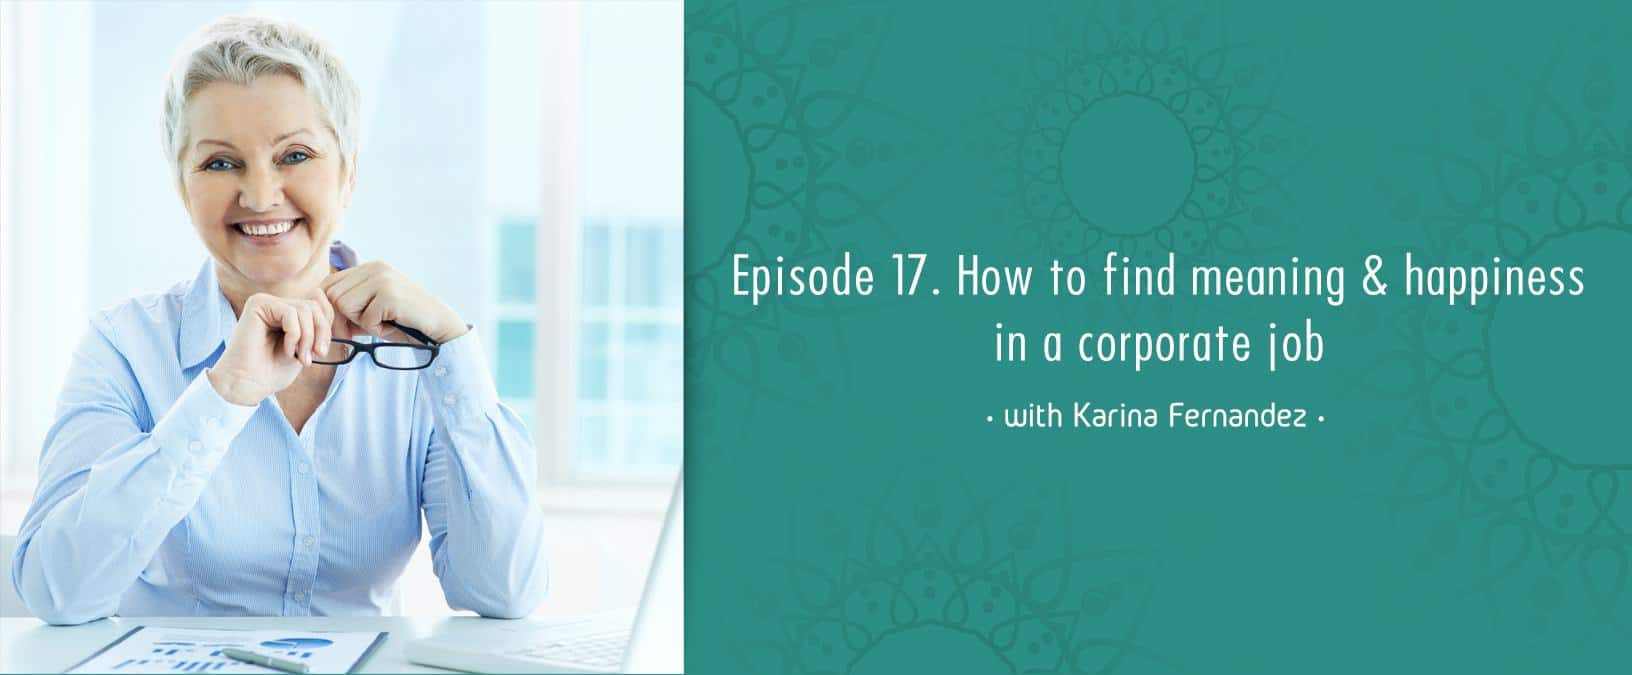 How to find meaning & happiness in a corporate job